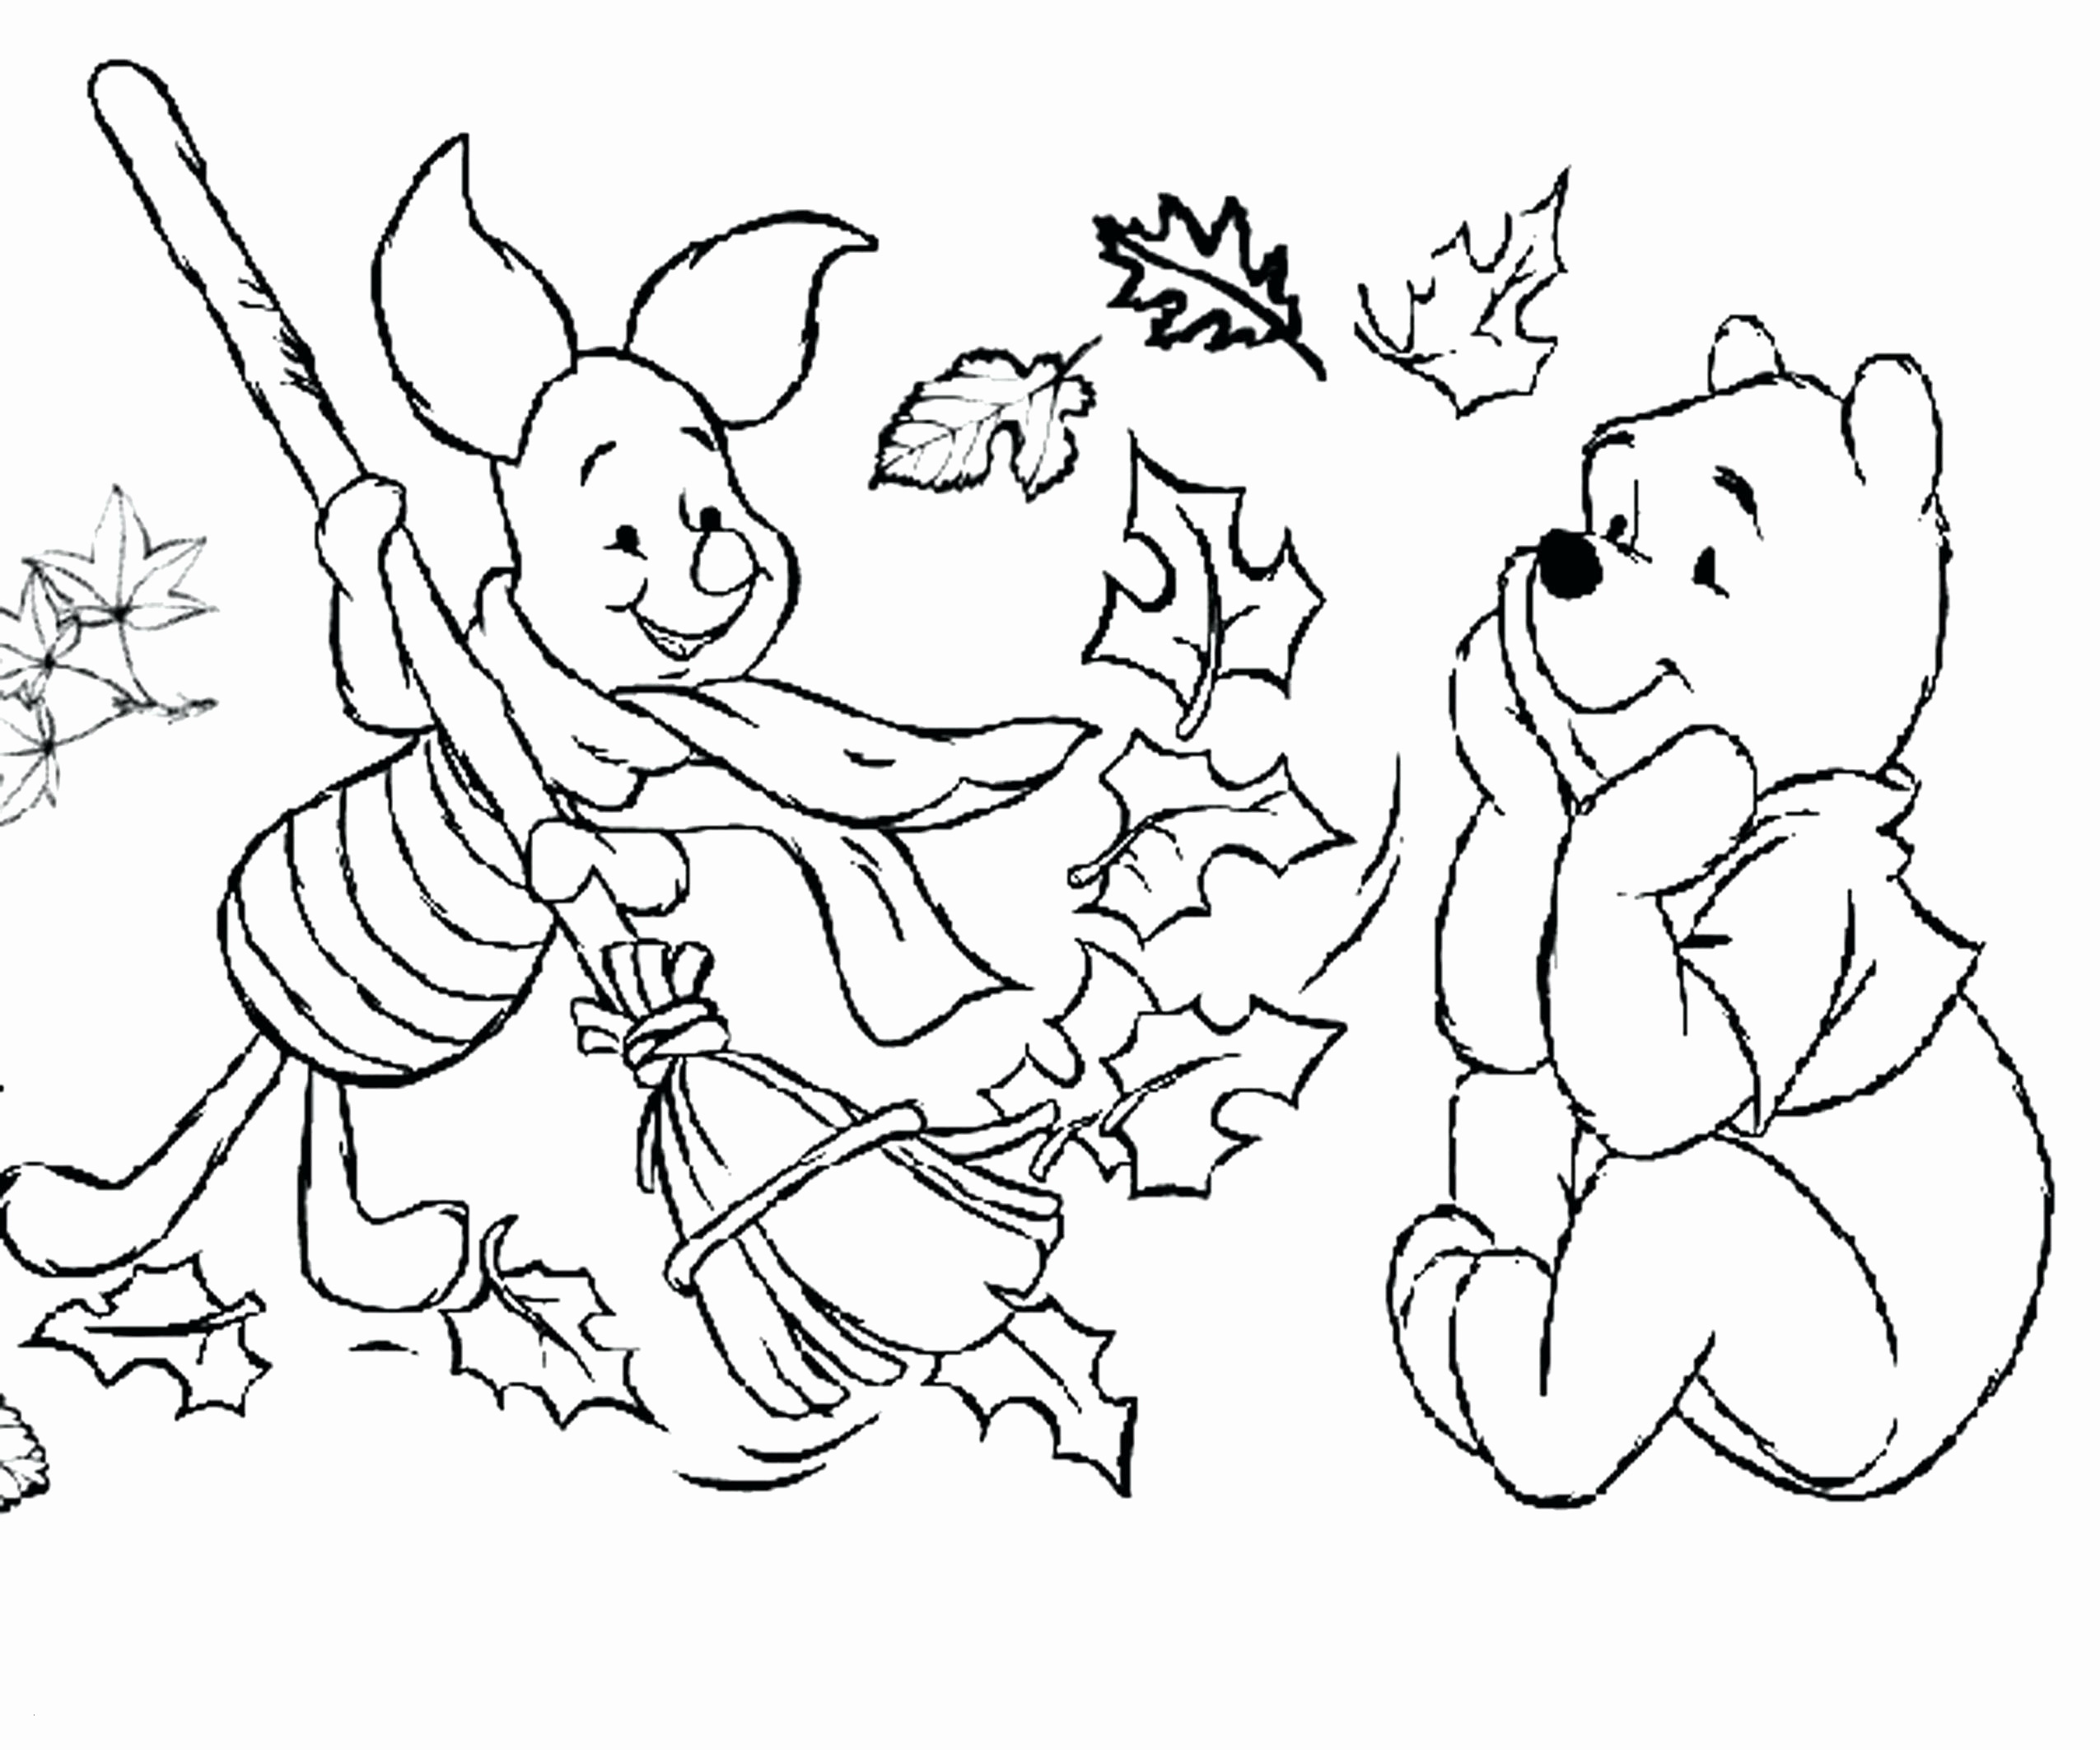 free printable bible coloring pages for preschoolers Collection-Preschool Fall Coloring Pages Bible Coloring Sheets for Kids Wonderful Preschool Fall Coloring 16-k